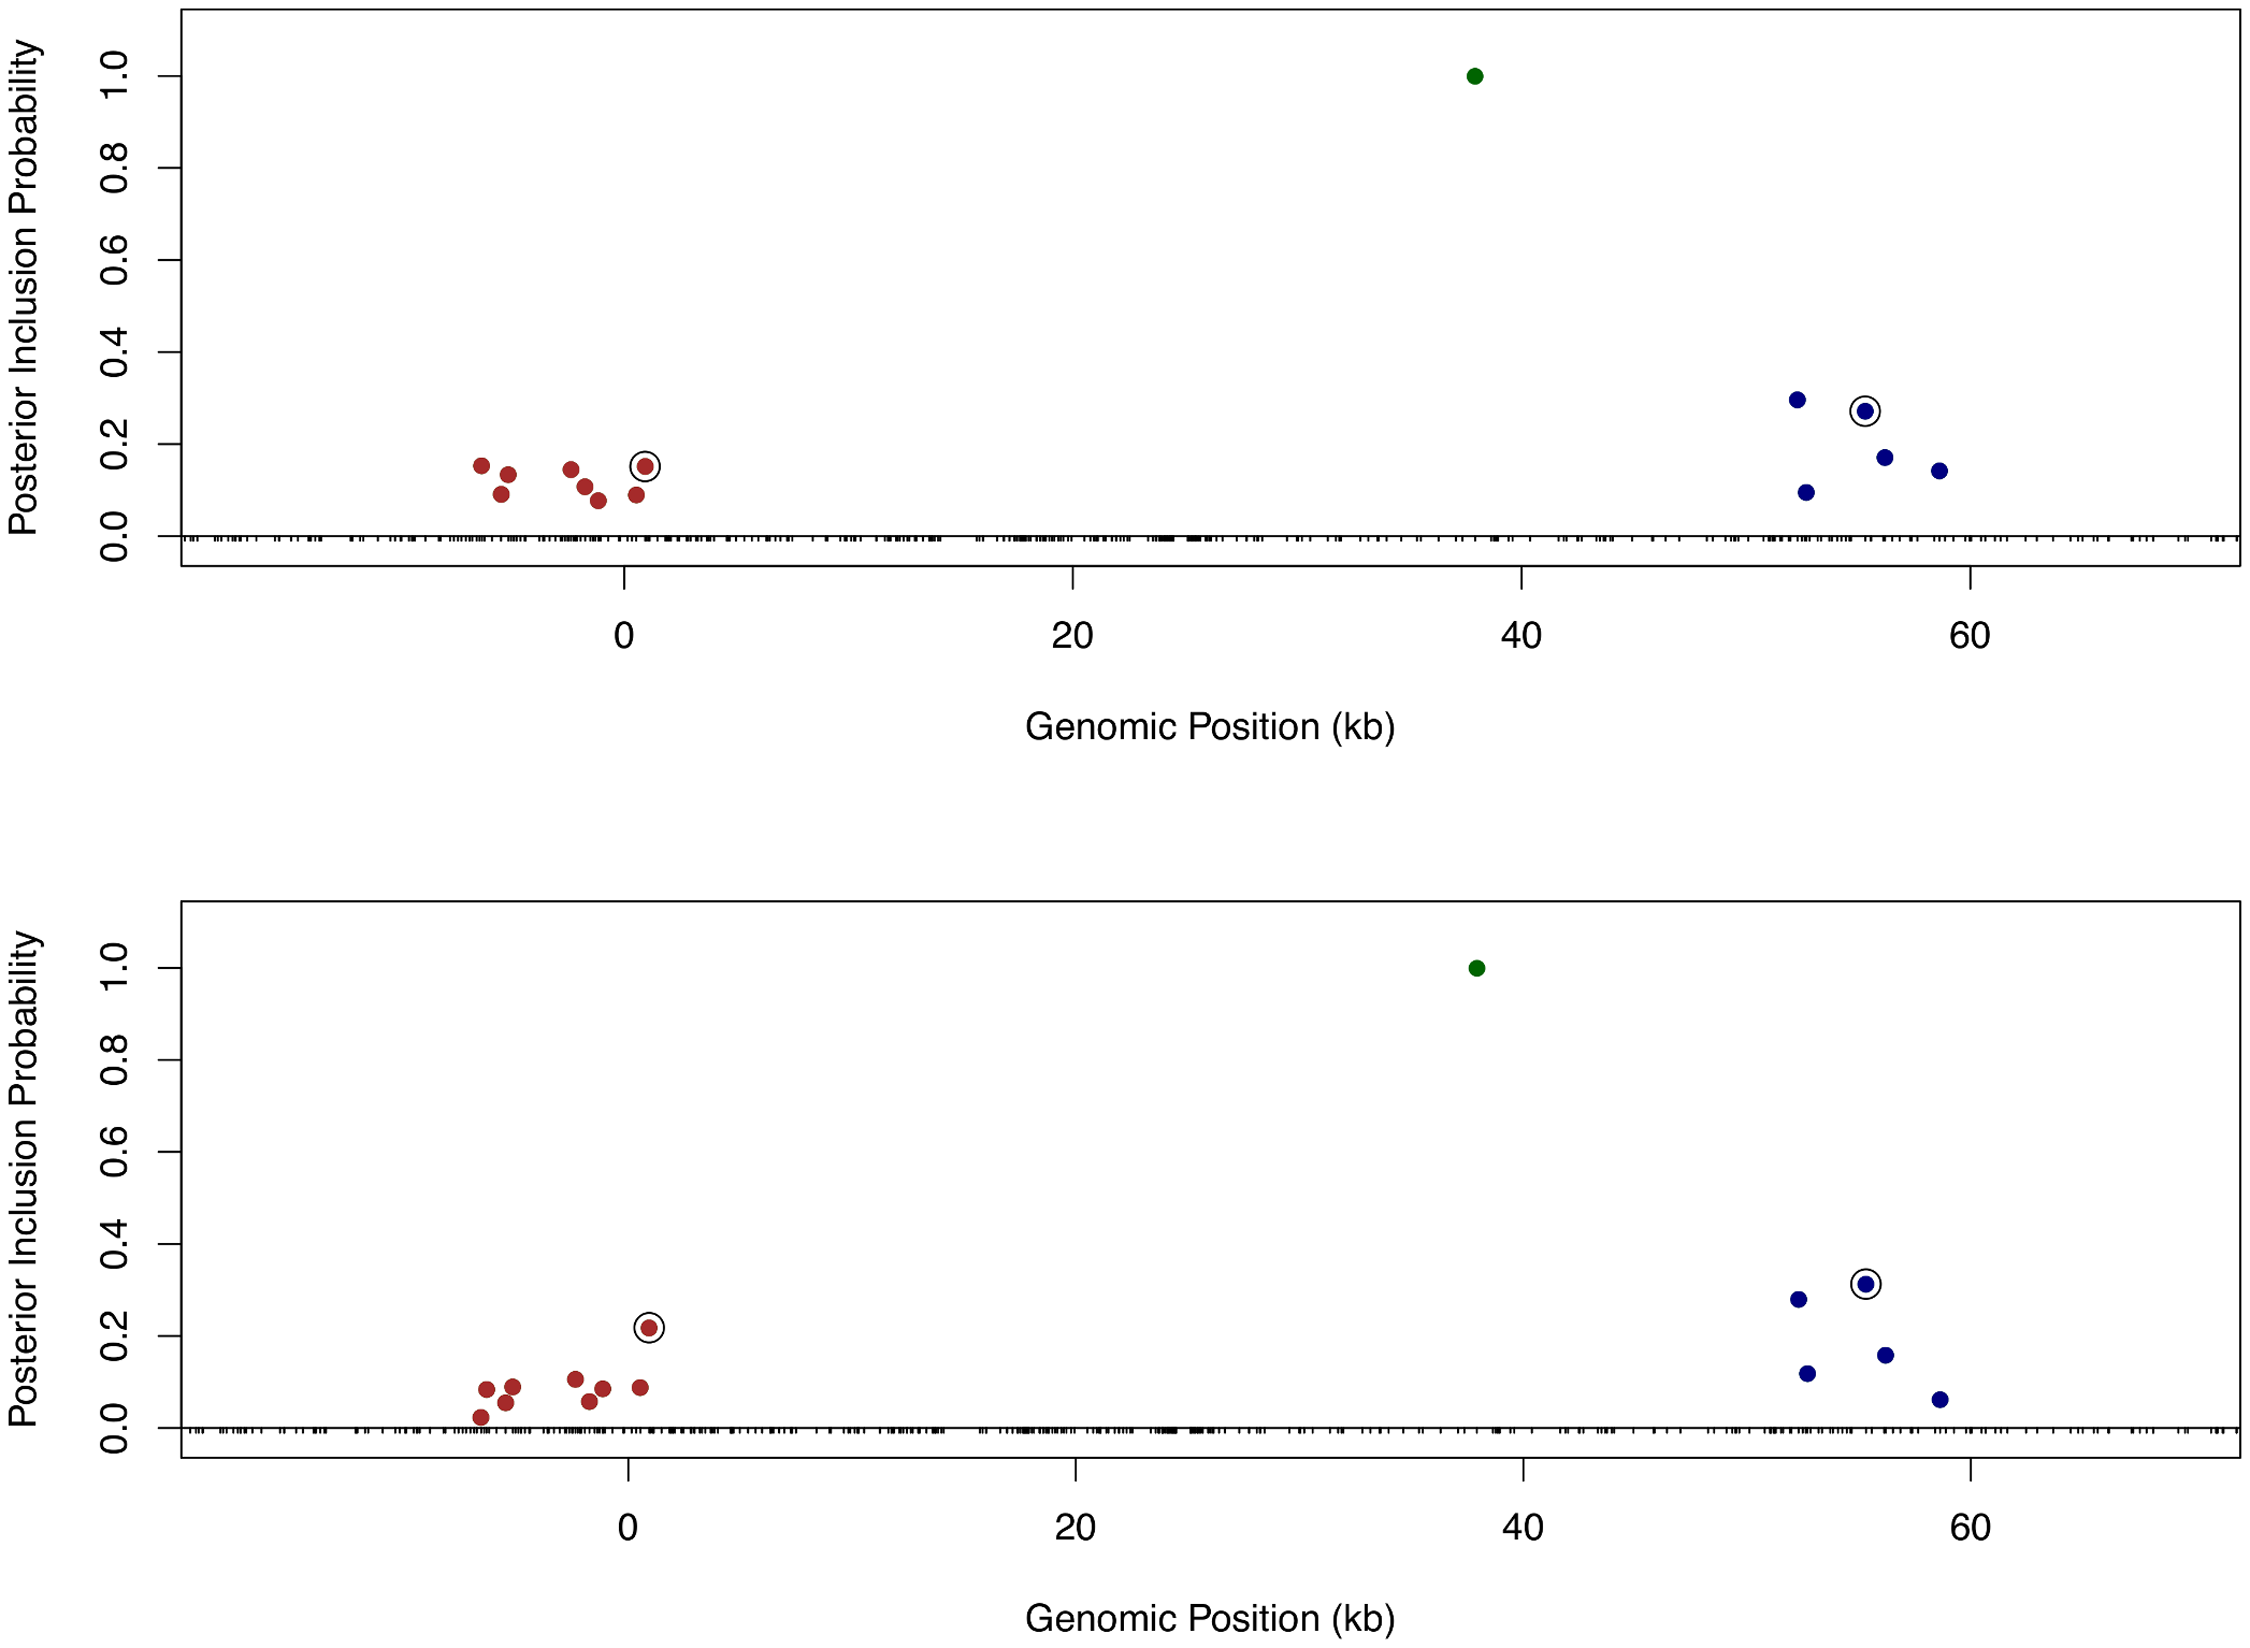 Comparison of fine mapping results of gene <i>LY86</i> before and after incorporating functional annotations.